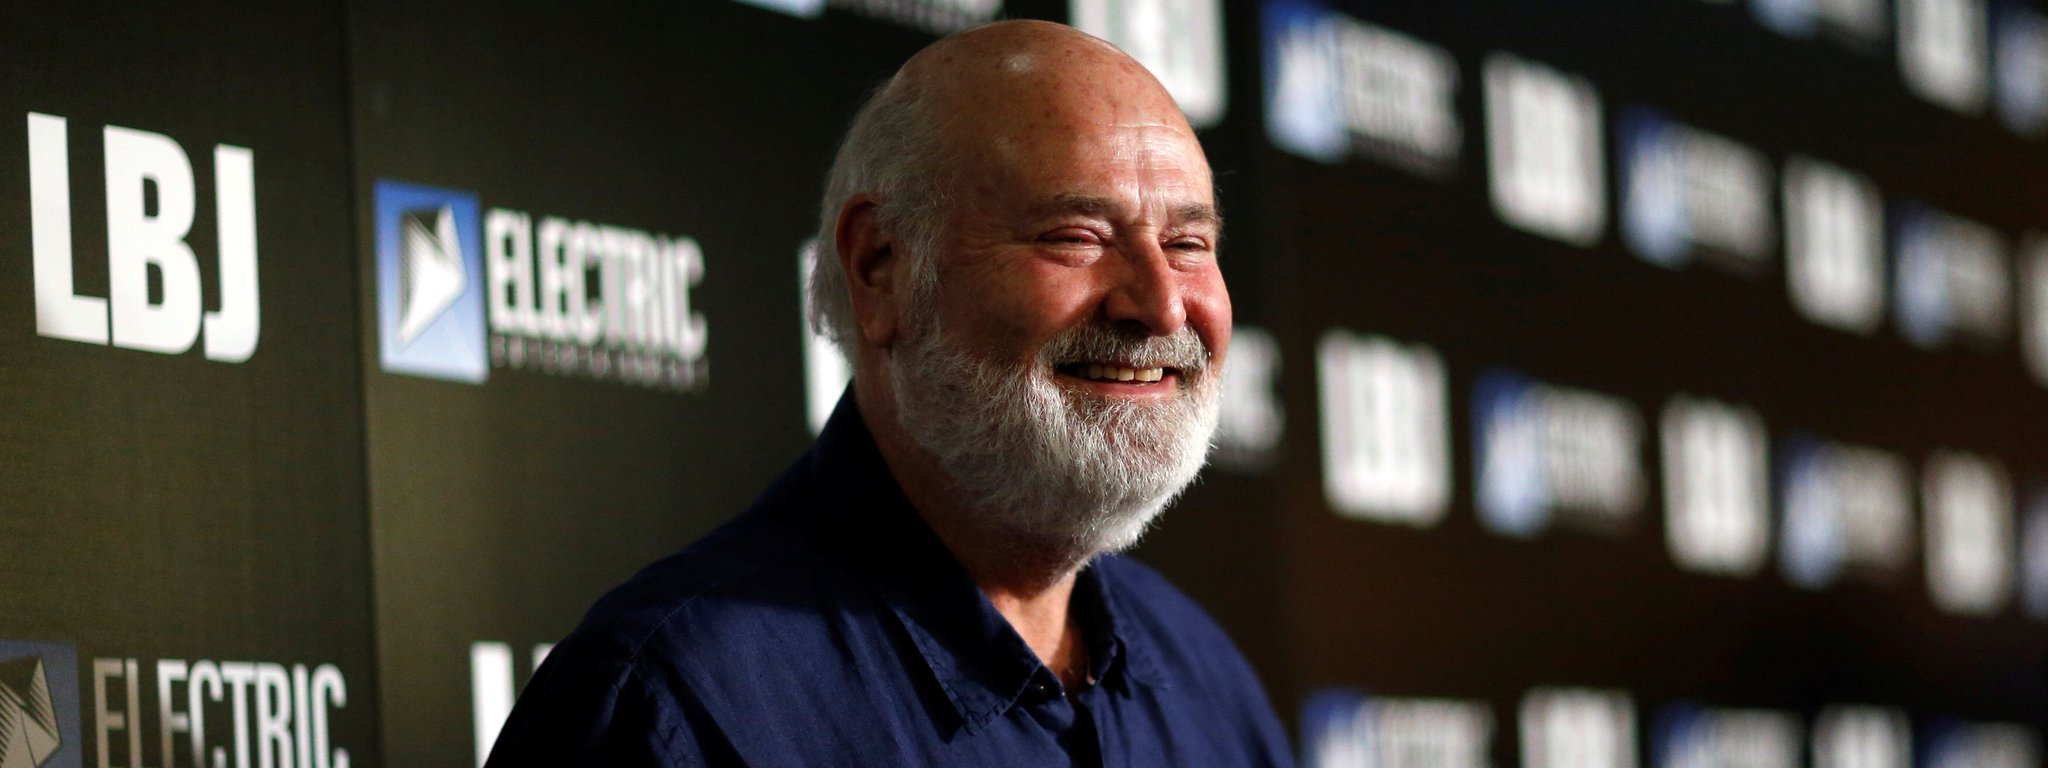 Rob Reiner Says Archie Bunker Was A 'Lovable Bigot' While Trump Is 'A Racist' [VIDEO] https://t.co/laI2cJDuJe https://t.co/kBoF6O5a7E